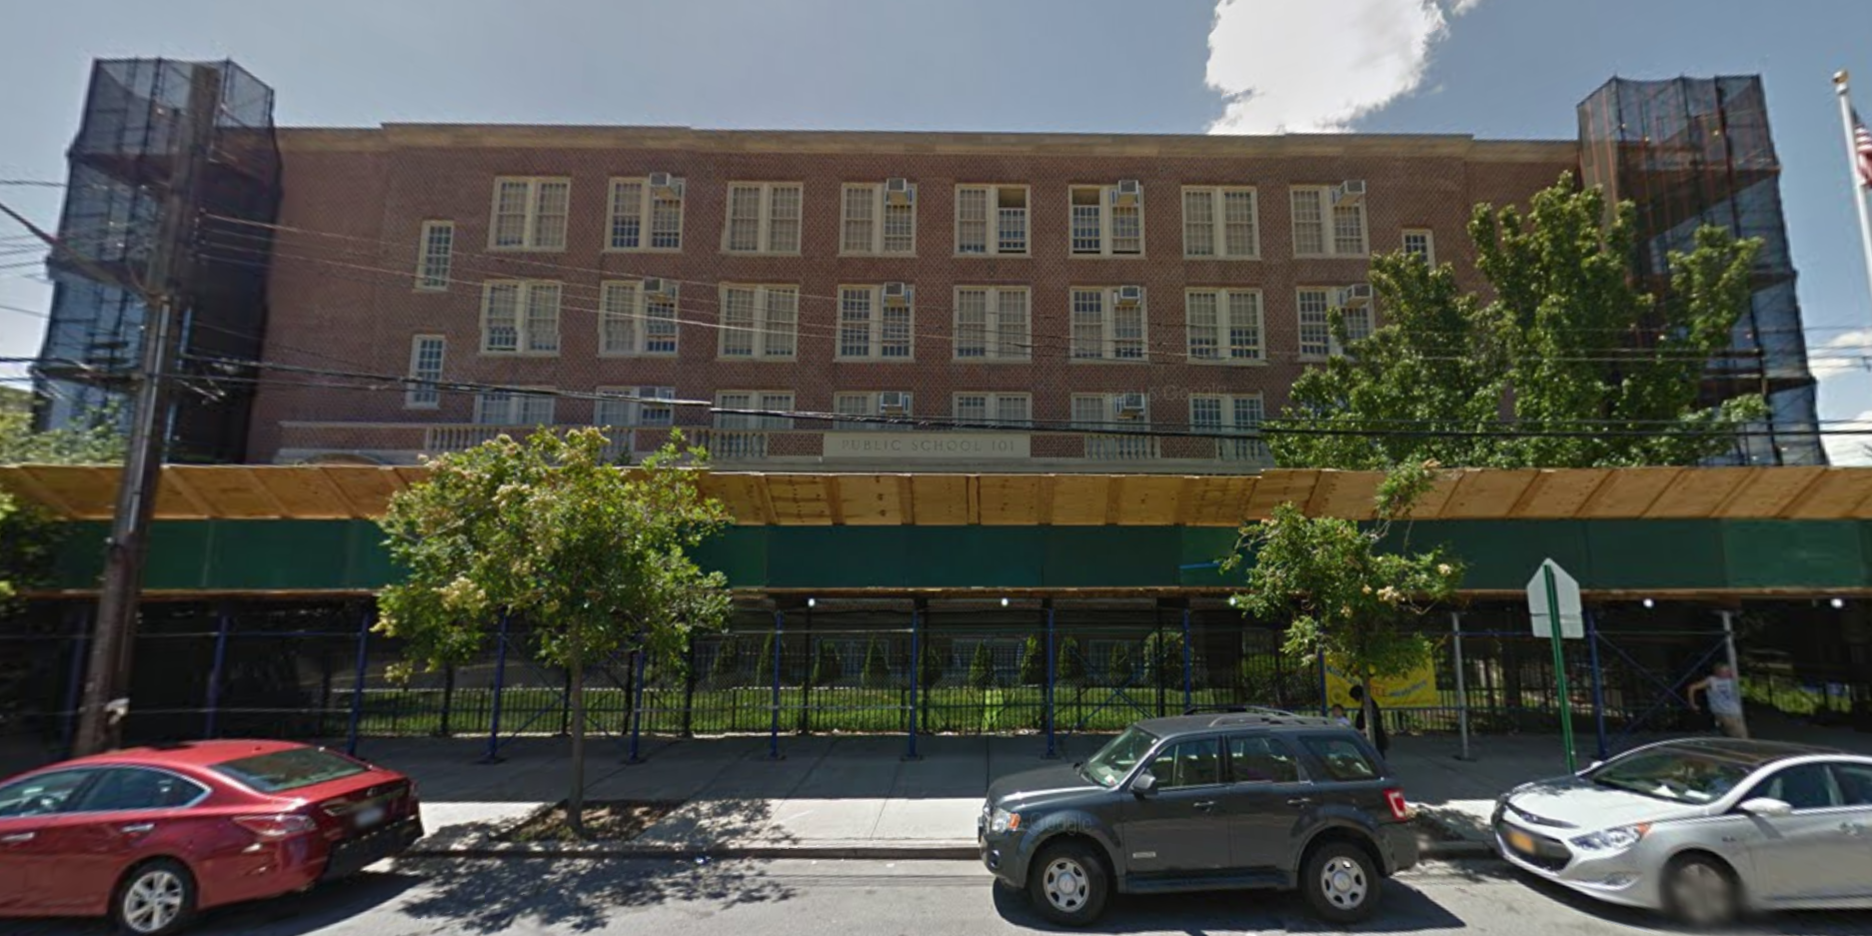 The current P.S. 101 at 2350 Benson Avenue in Gravesend. image via